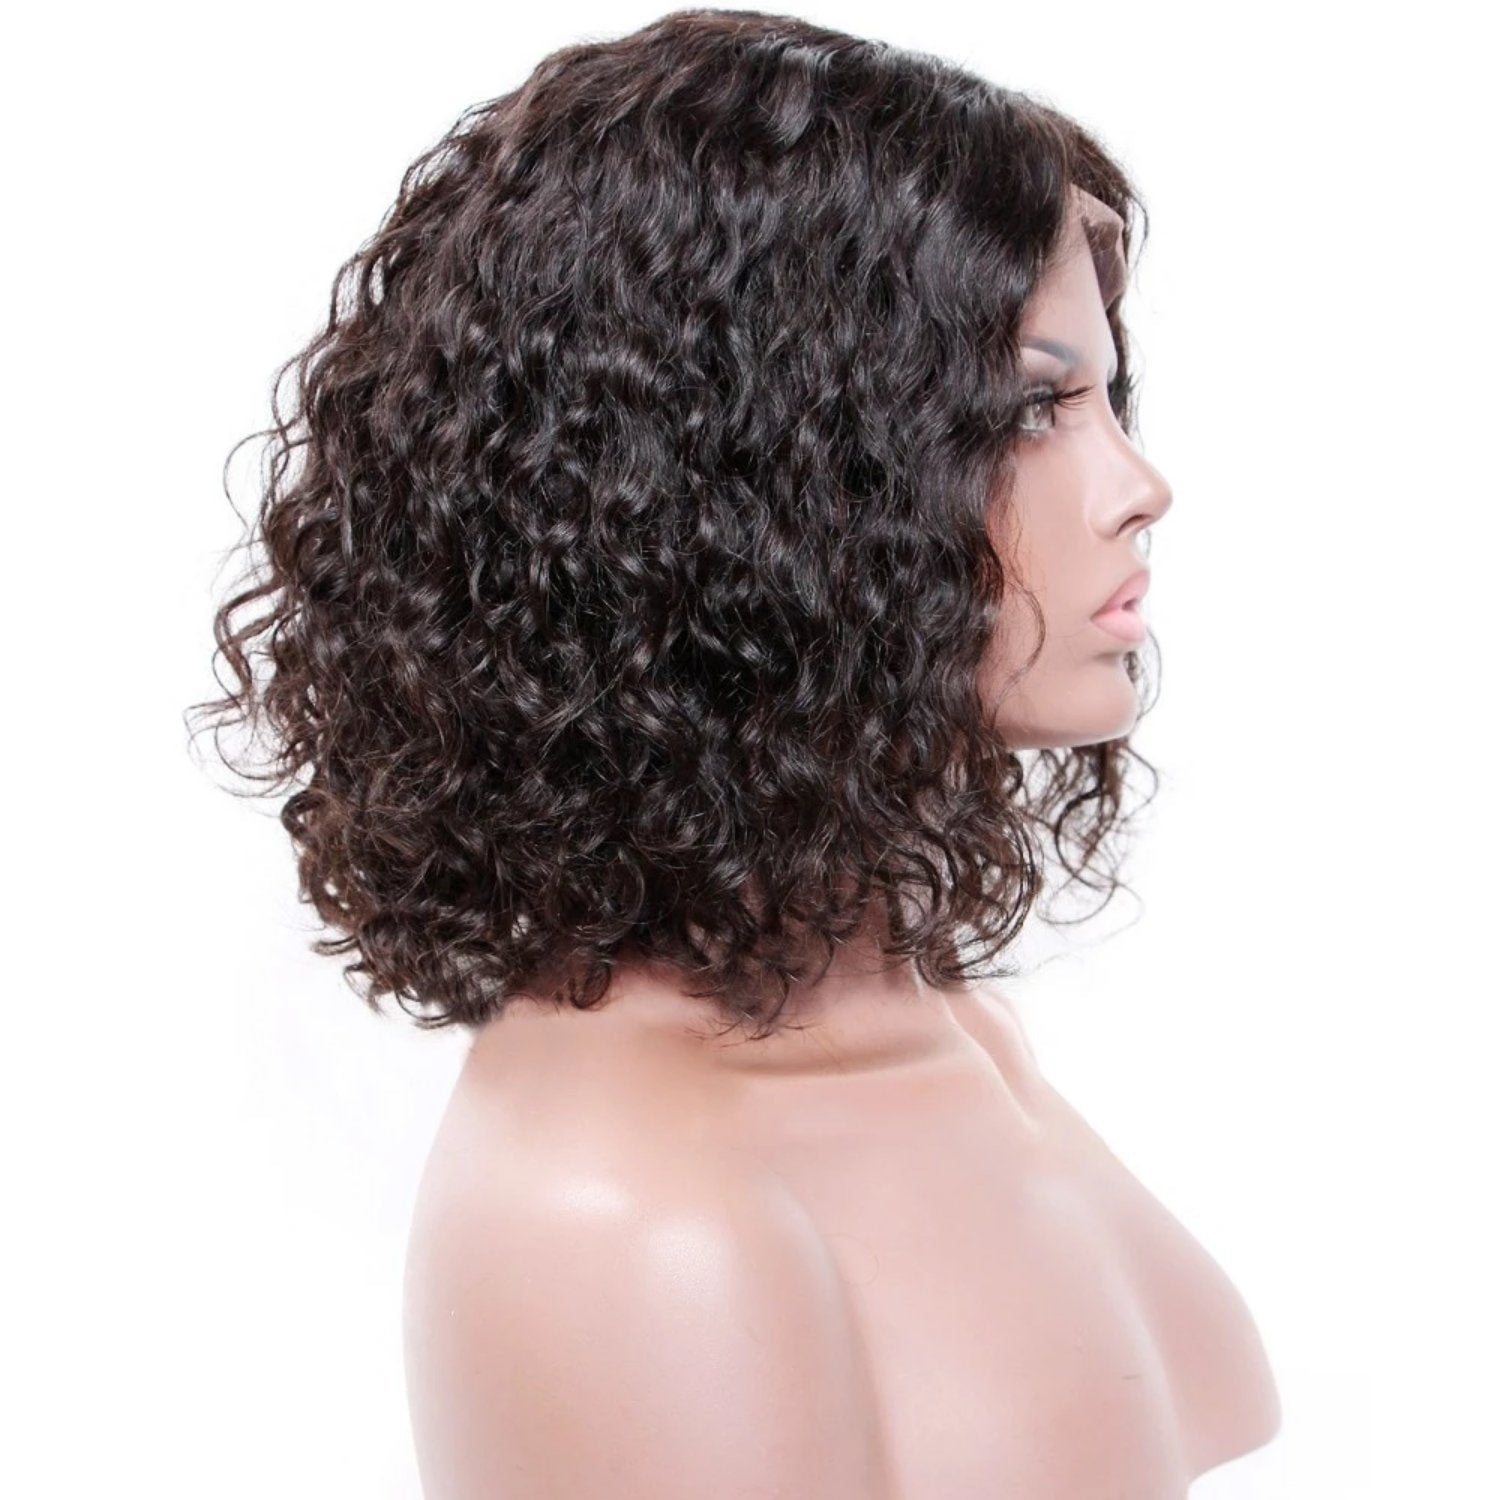 Brazilian Curly Lace Front Wig - Fresh Hair Extensions and Accessories